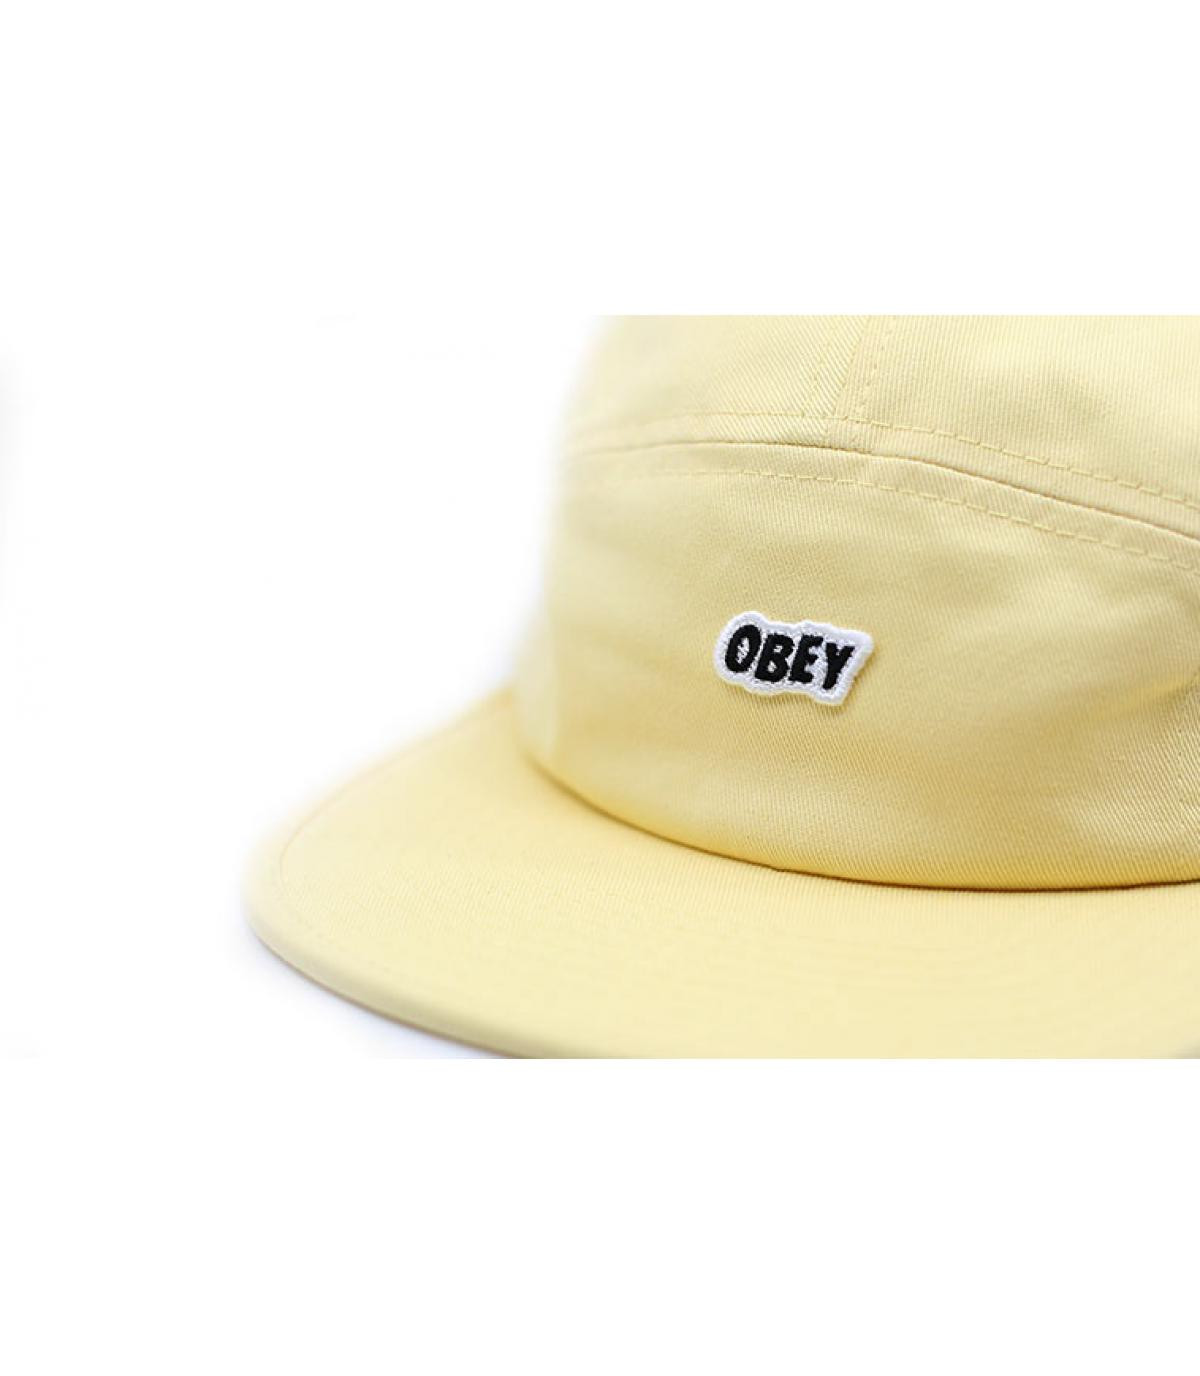 Détails Sleeper 5 Panel pale yellow - image 3